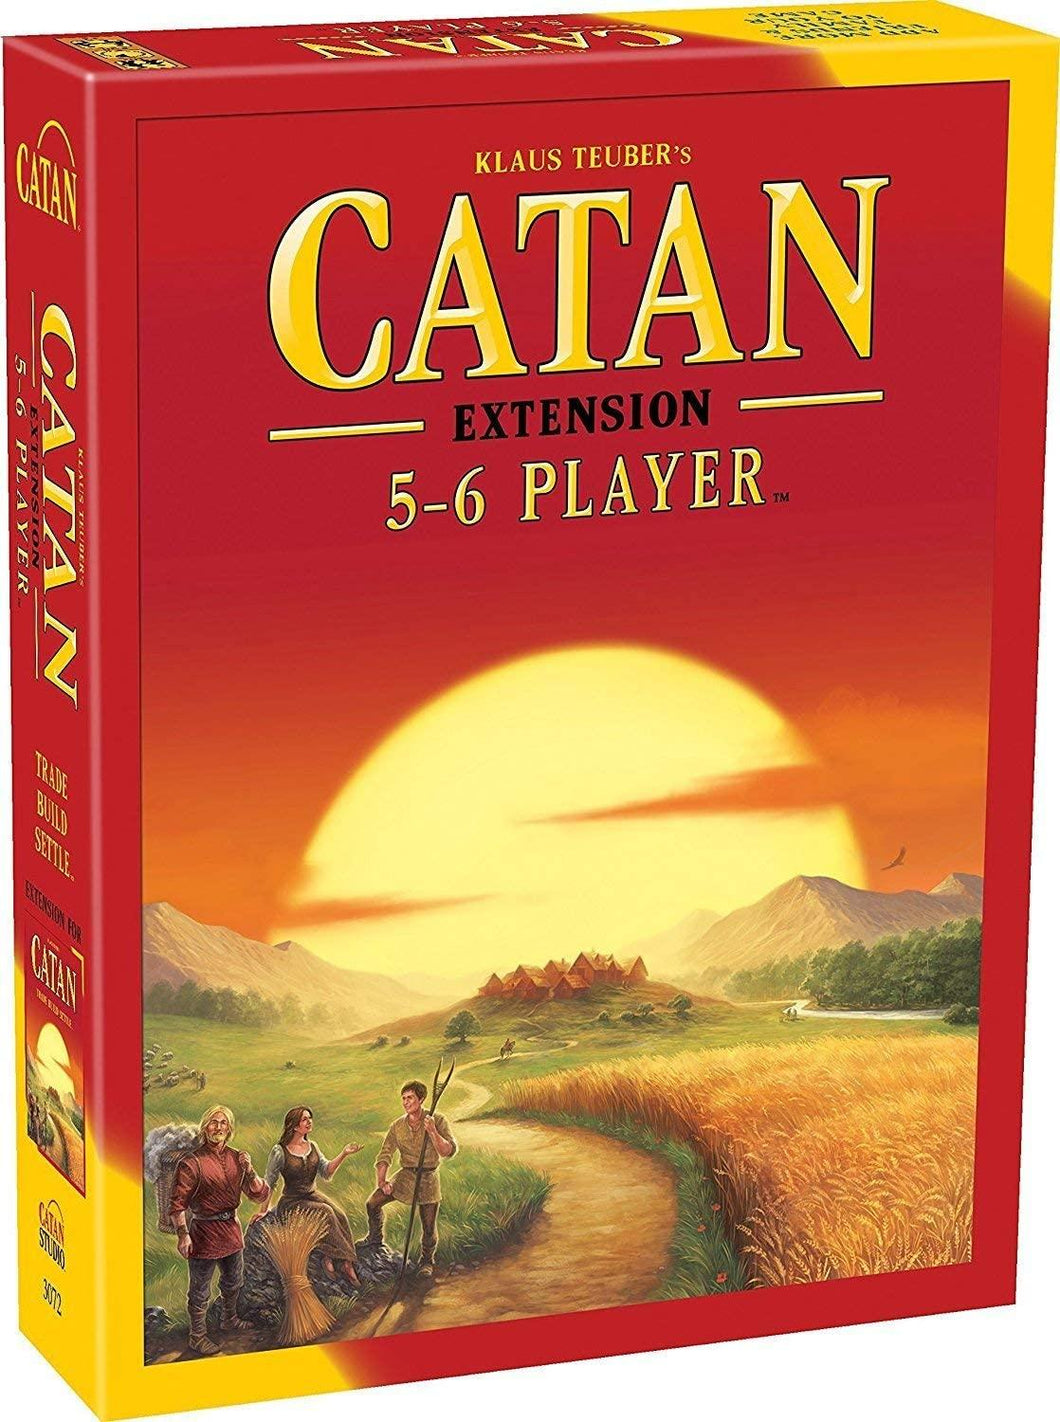 Catan 5&6 Player Extension 5th Edition